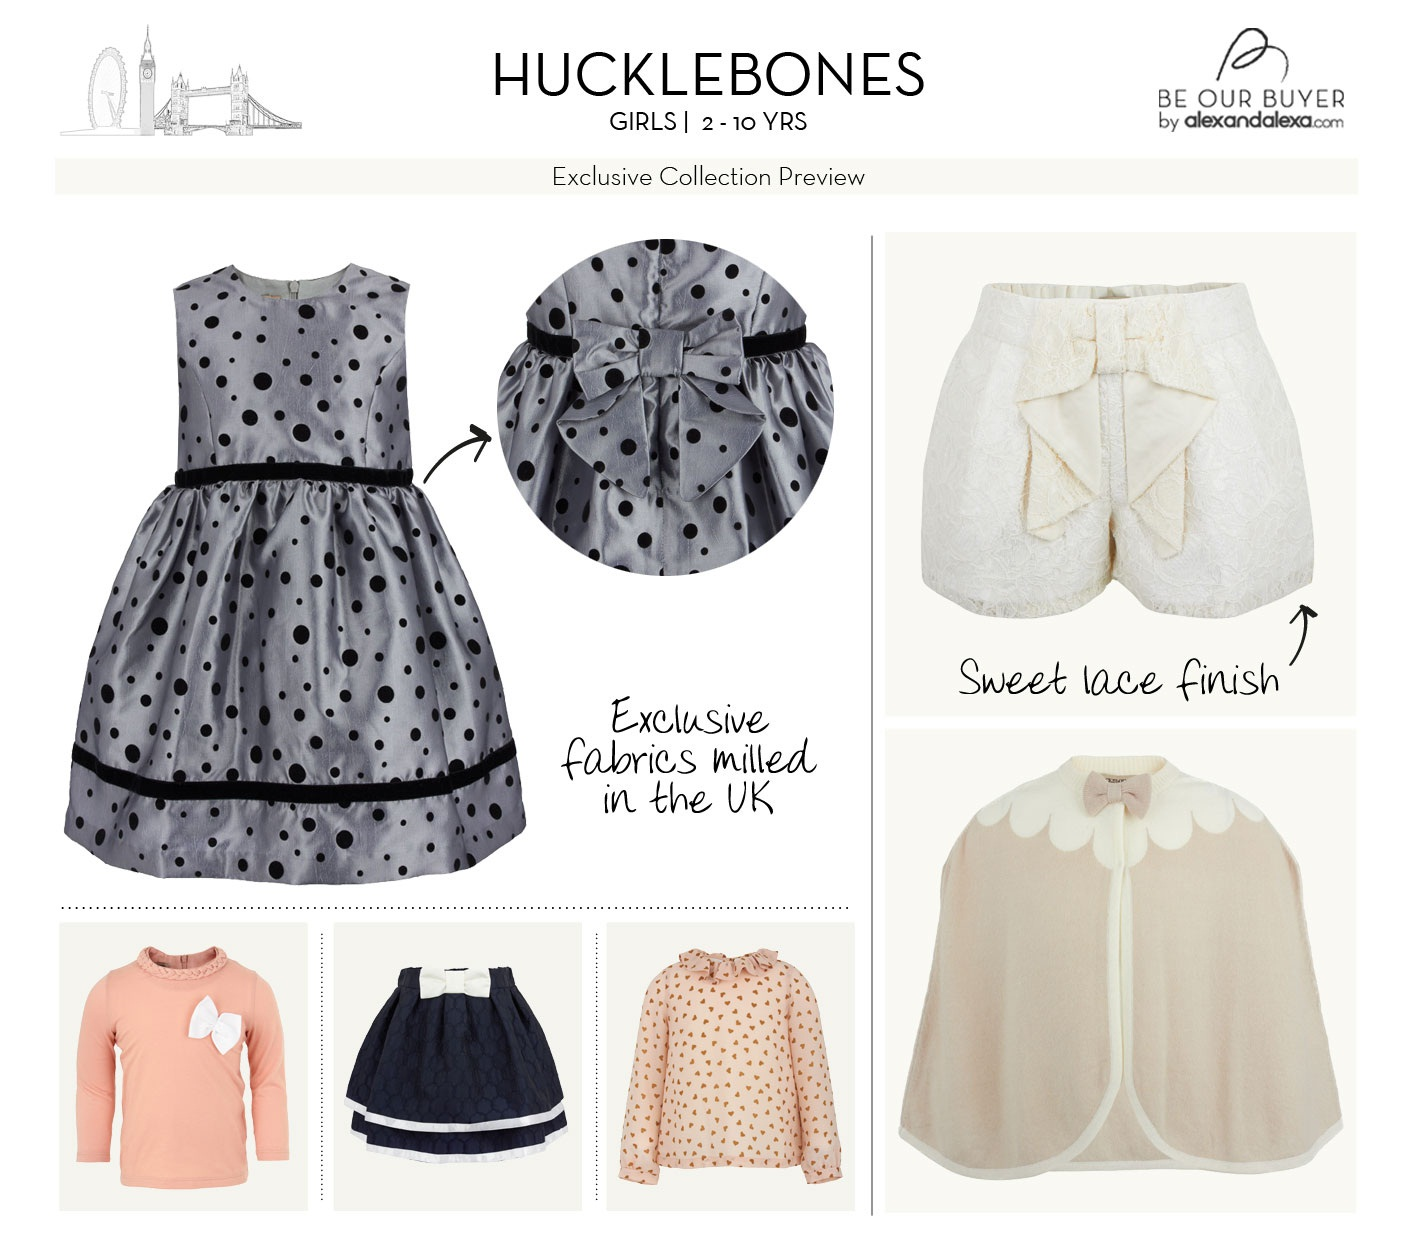 Hucklebones for girls